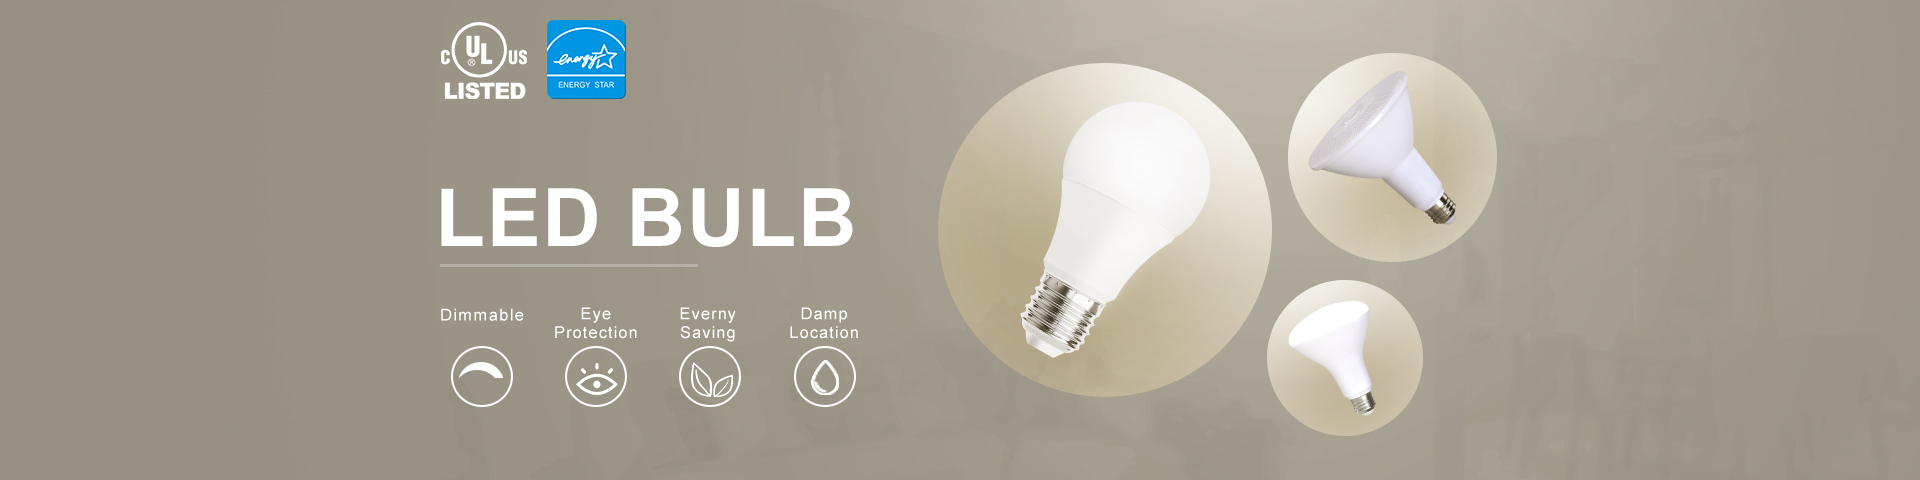 UL LED BULBS from Worbest